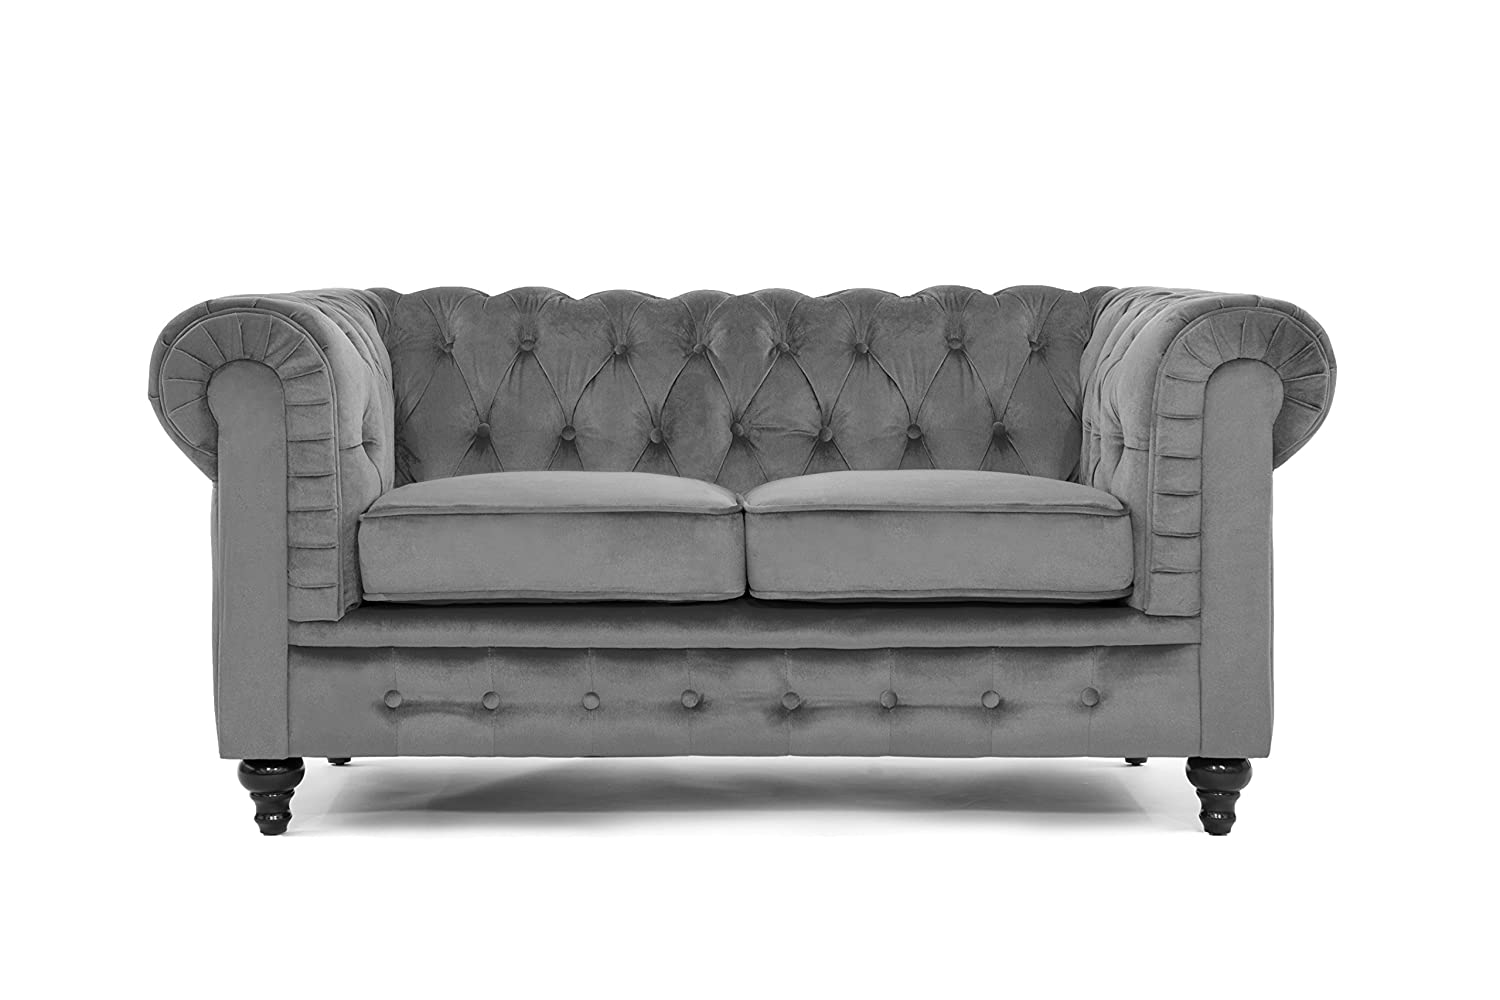 Attirant Amazon.com: Classic Modern Scroll Arm Velvet Large Love Seat Sofa In Colors  Purple, Red, Black, Grey (Grey): Kitchen U0026 Dining